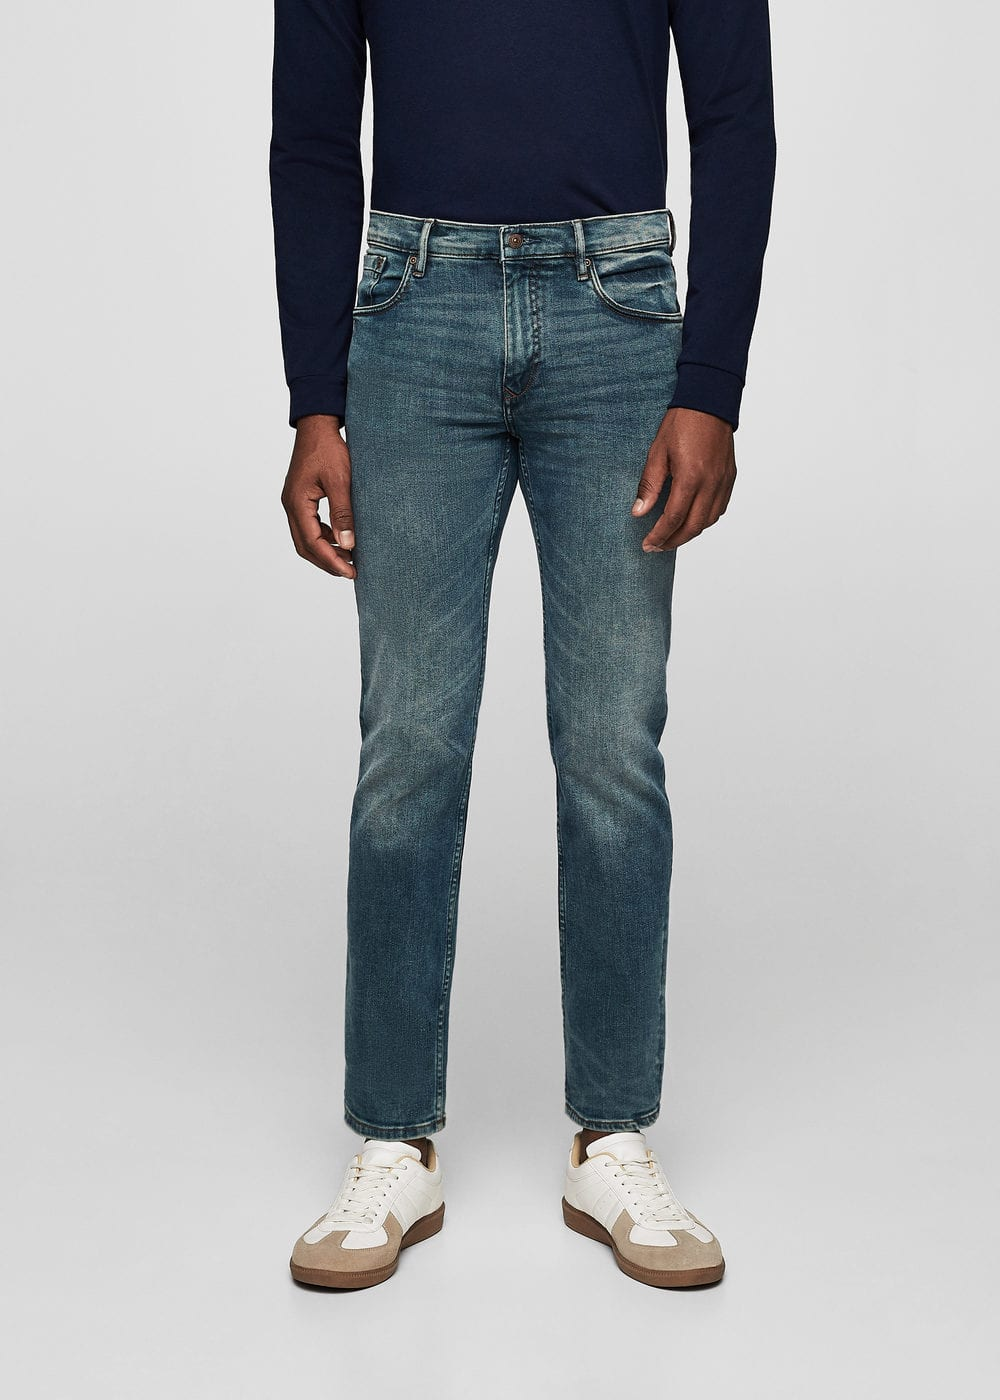 Jeans tim slim-fit lavado medio | MANGO